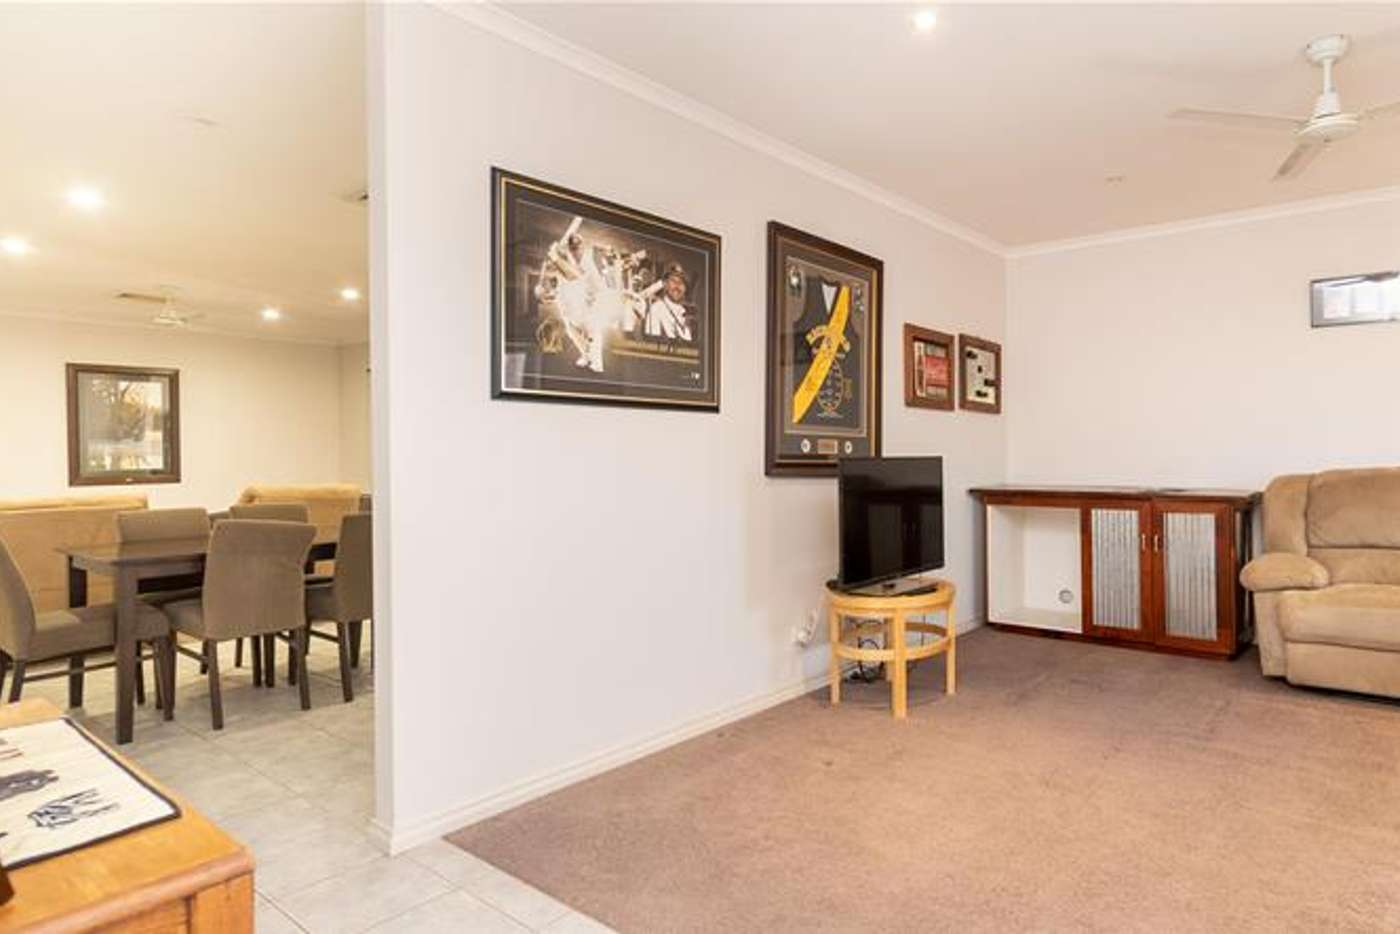 Fifth view of Homely house listing, 34 Wirraway Drive, Mildura VIC 3500